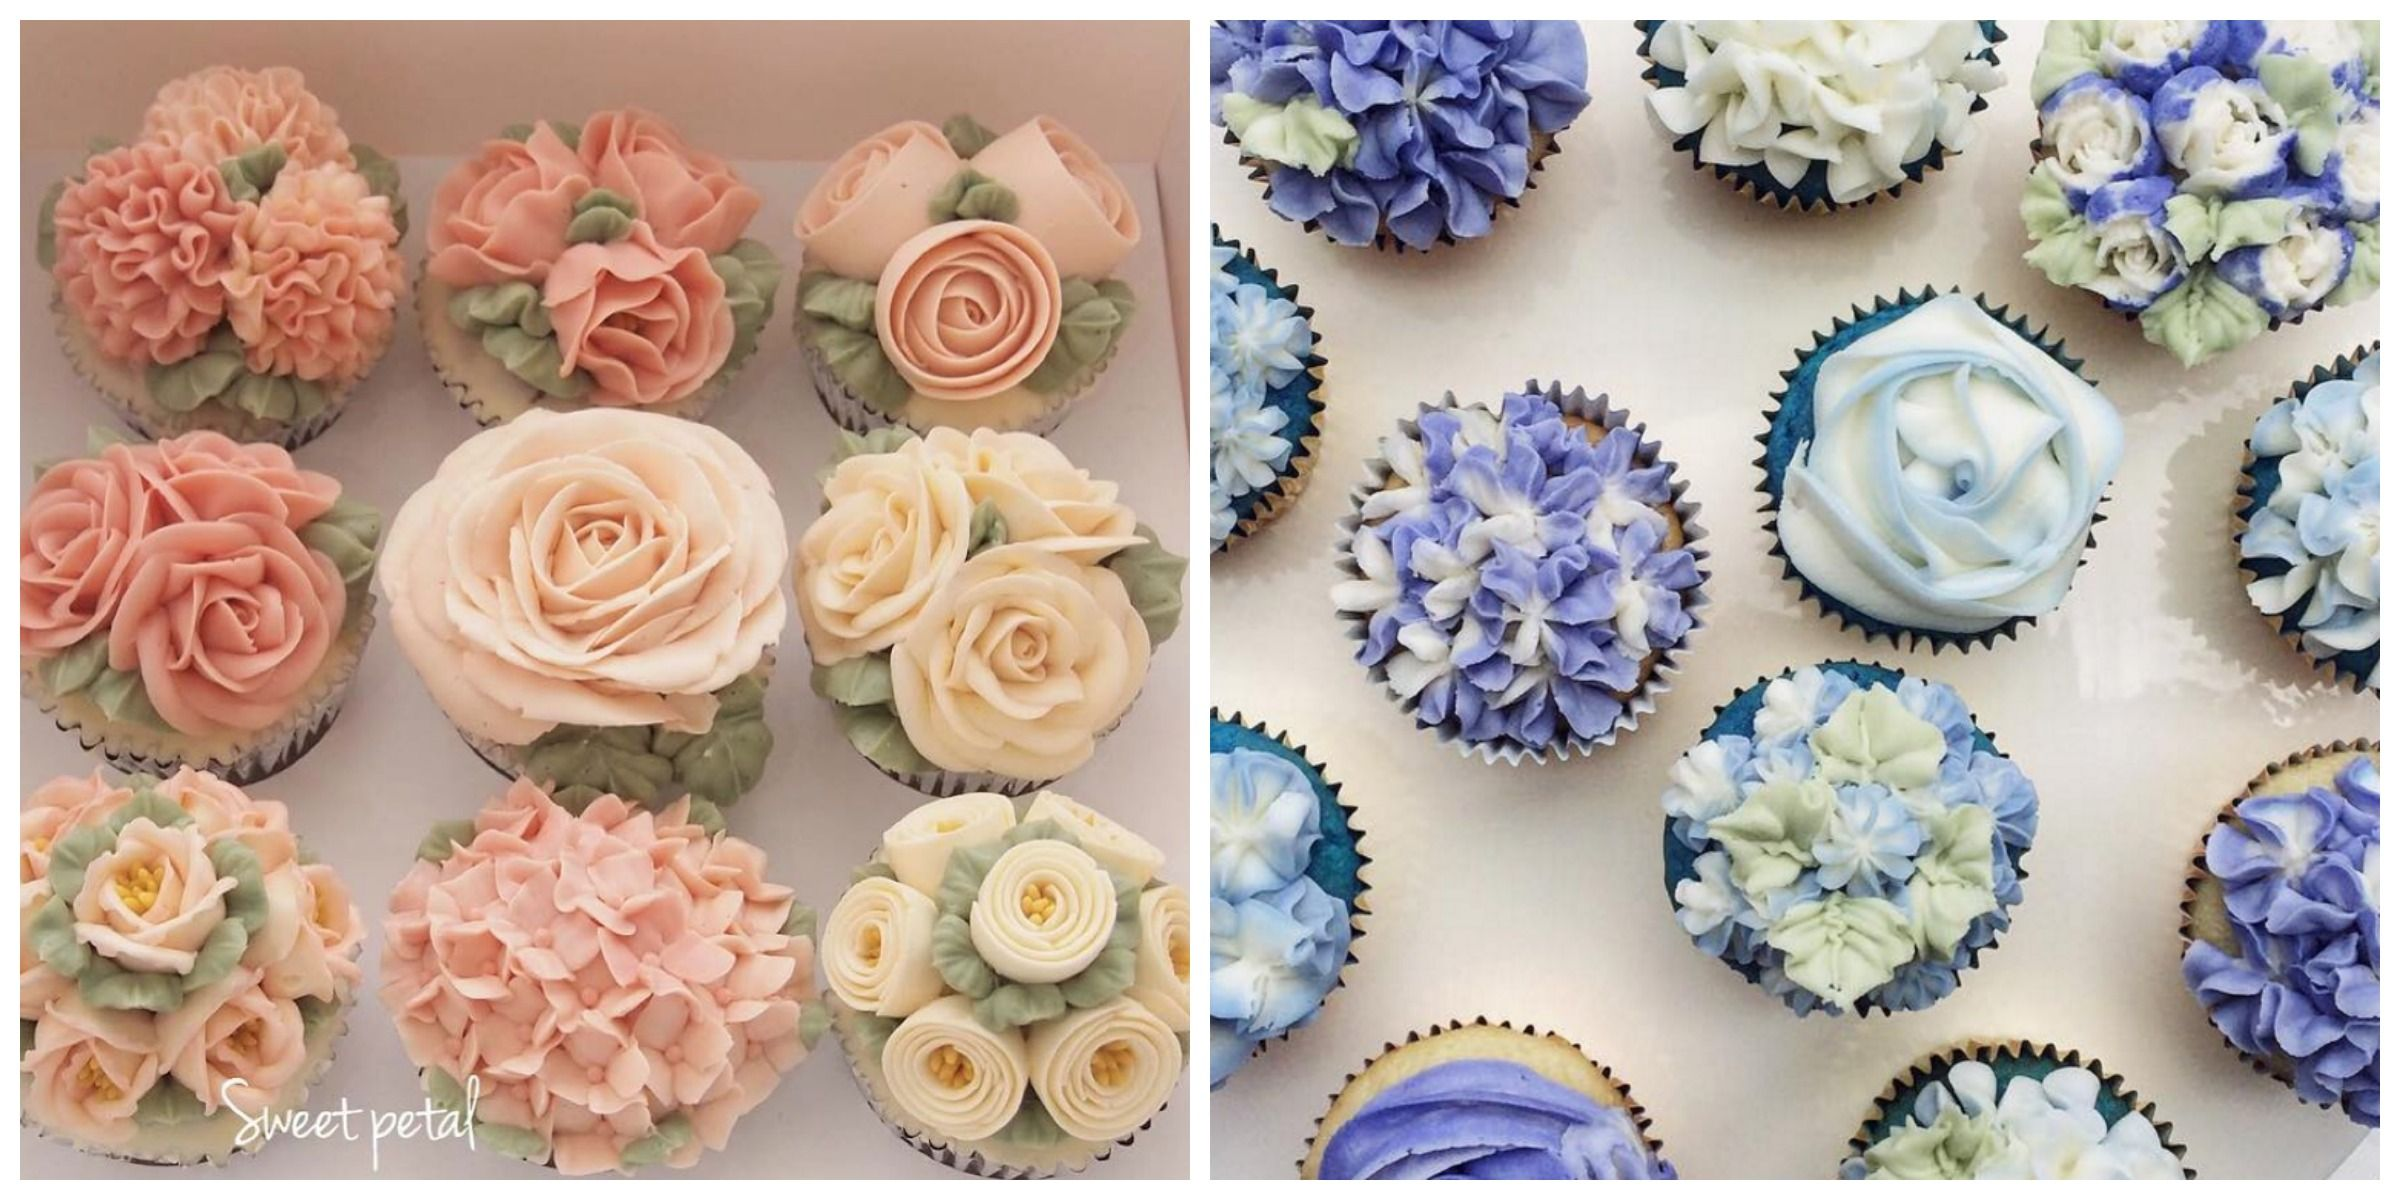 Cupcake Piping Ideas Ways To Frost Cupcakes